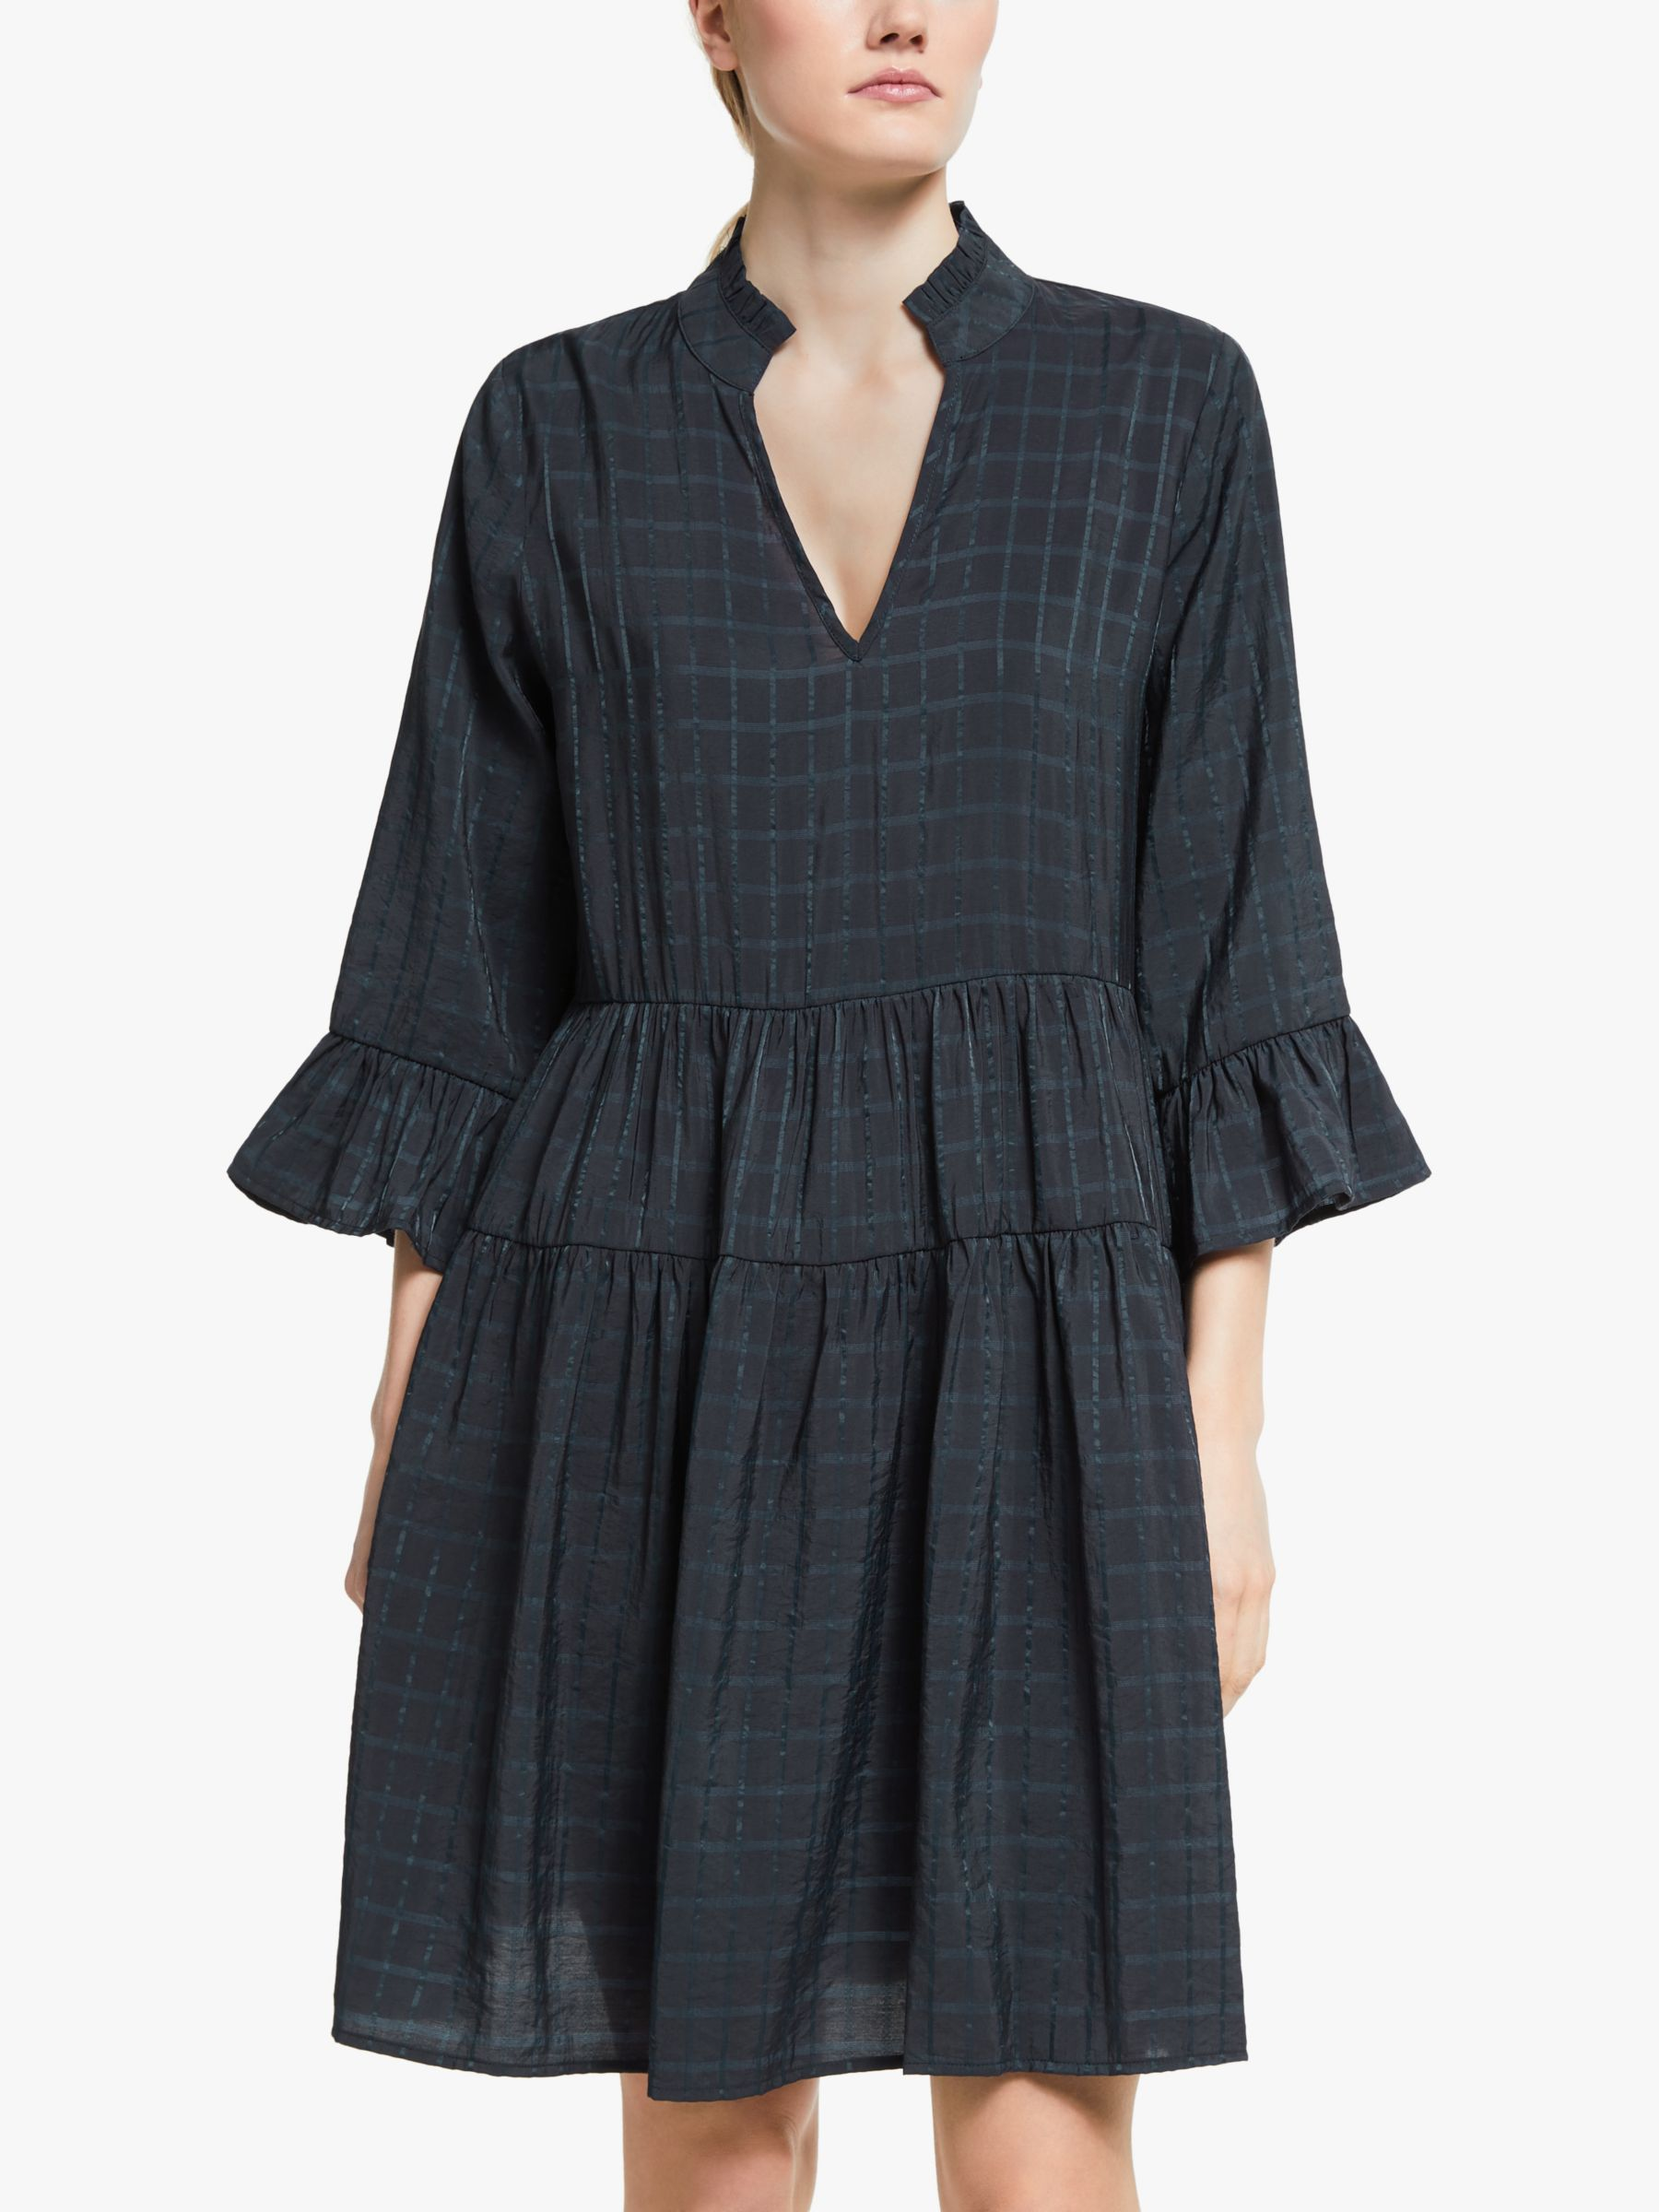 Numph Numph Nubeula Check Shift Dress, Sapphire